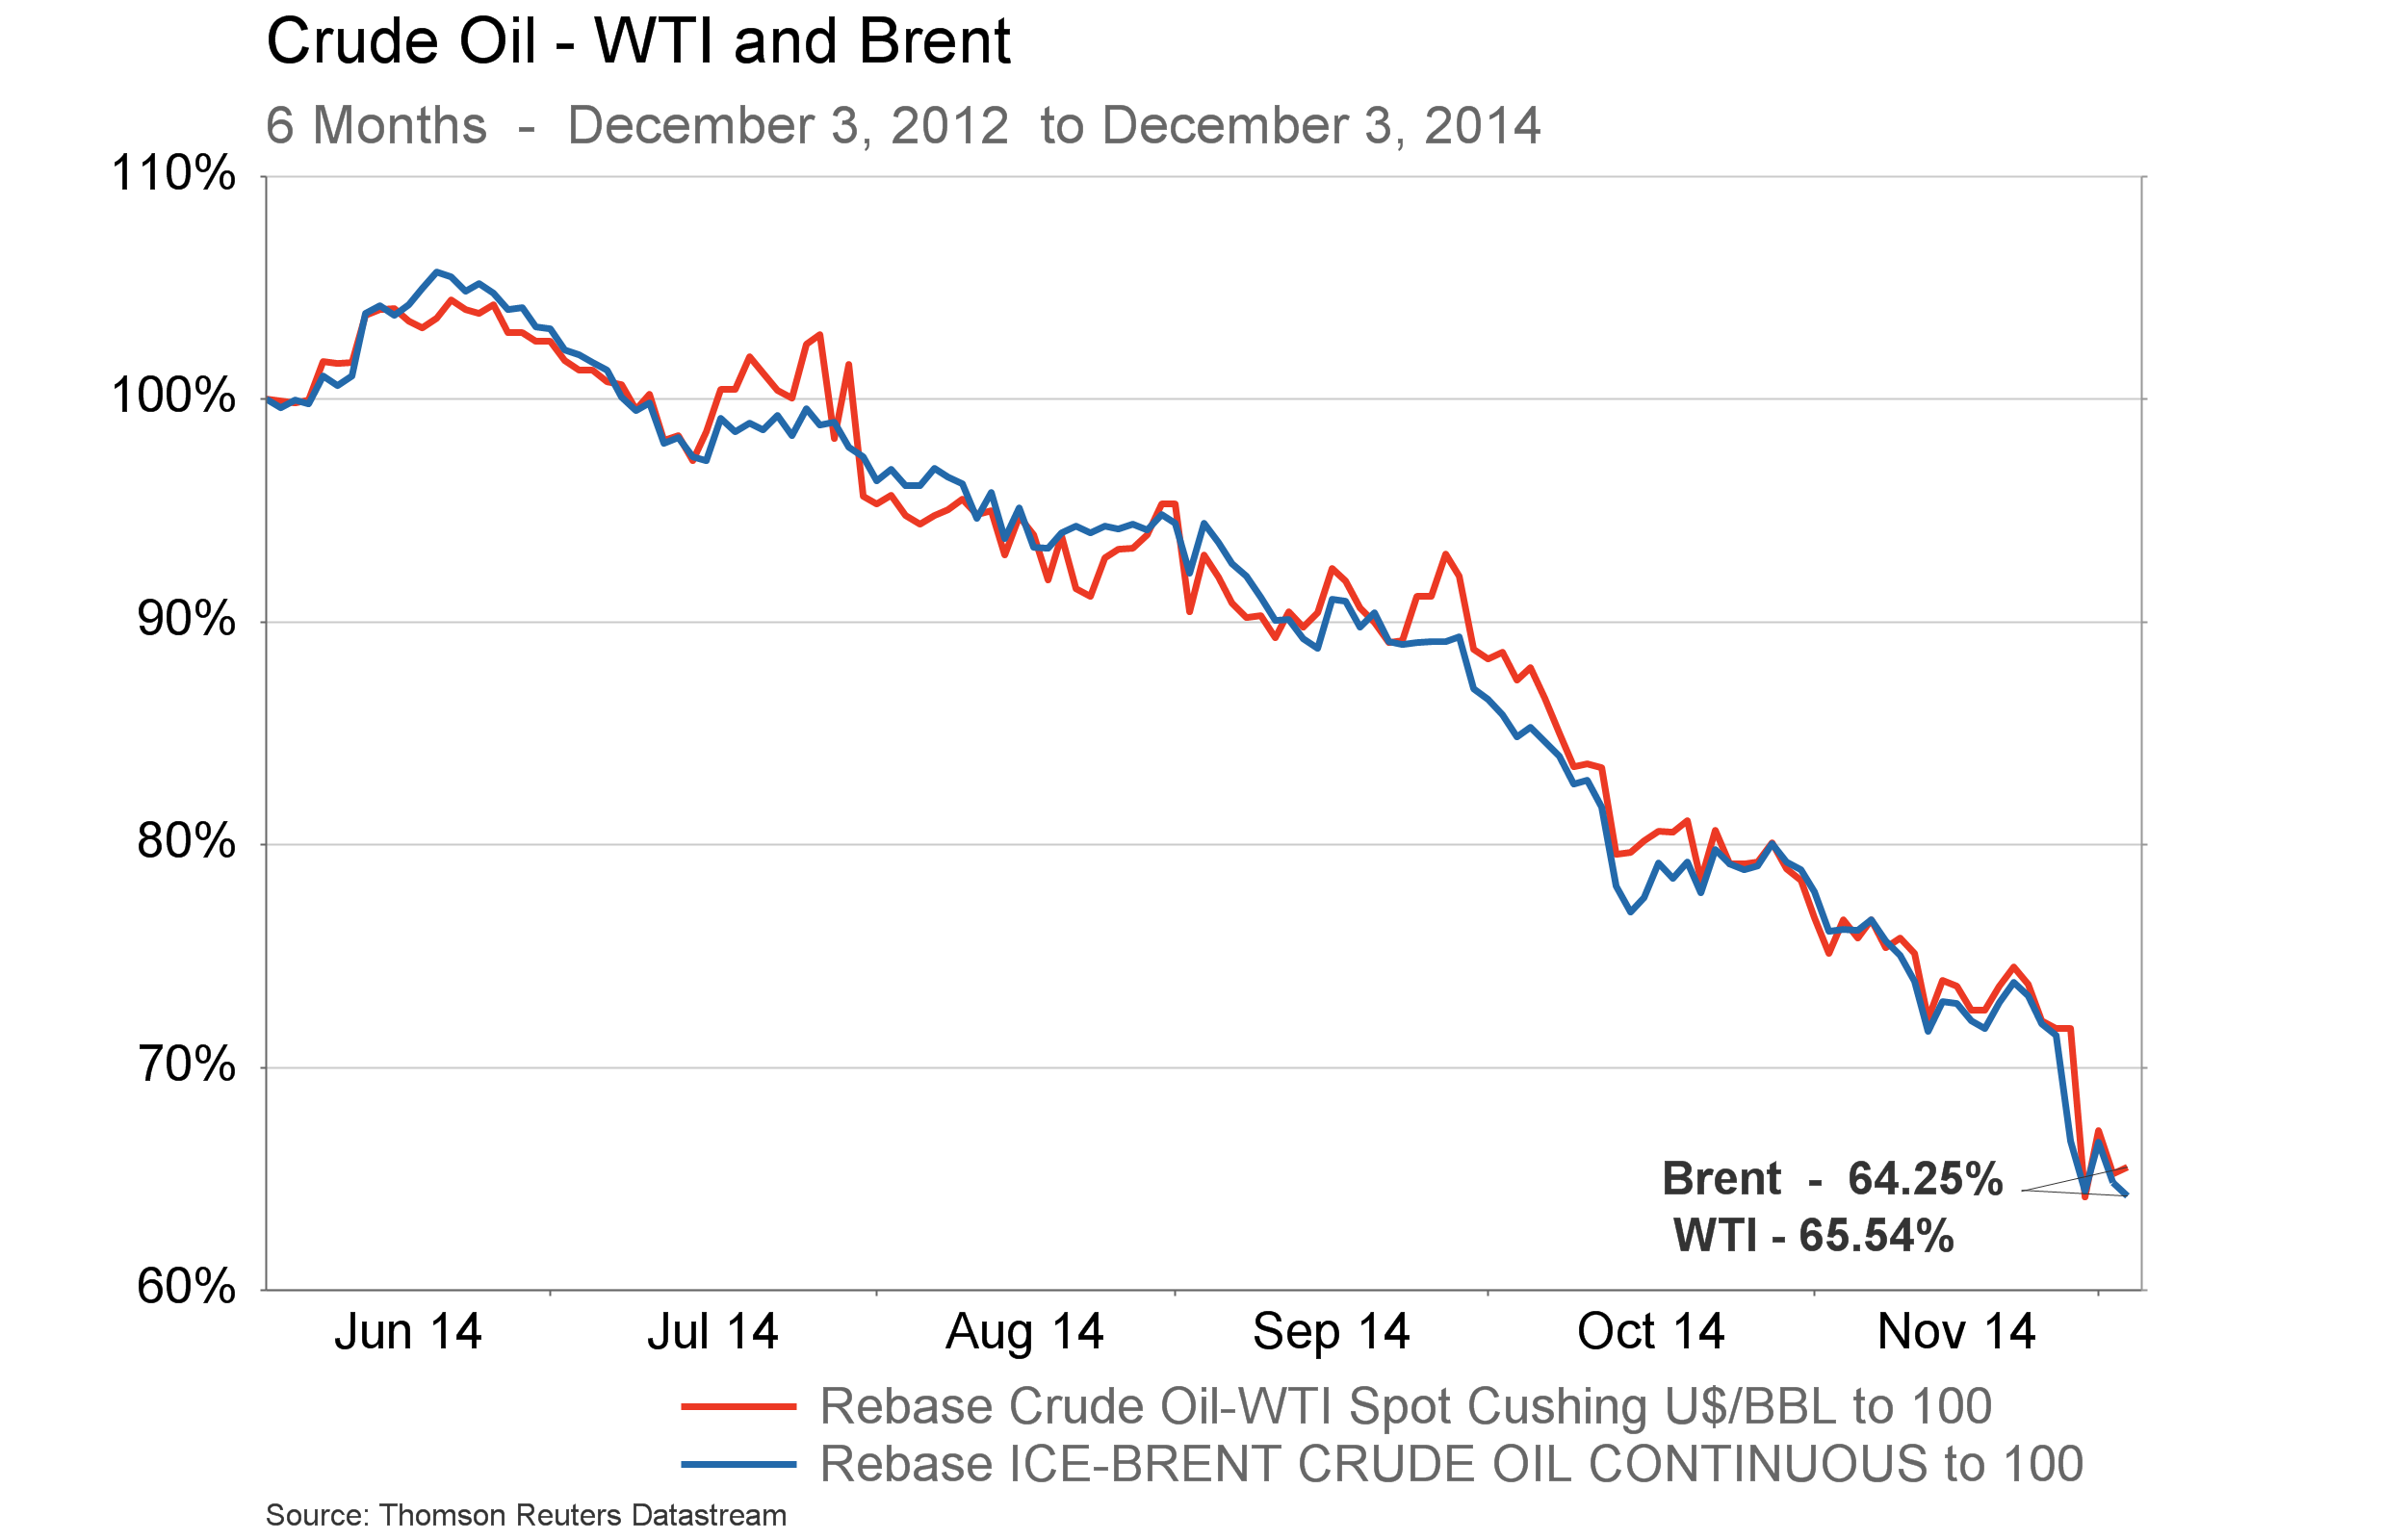 Dec. 5, 2014 Call - chart 3 - WTI and Brent 6 months